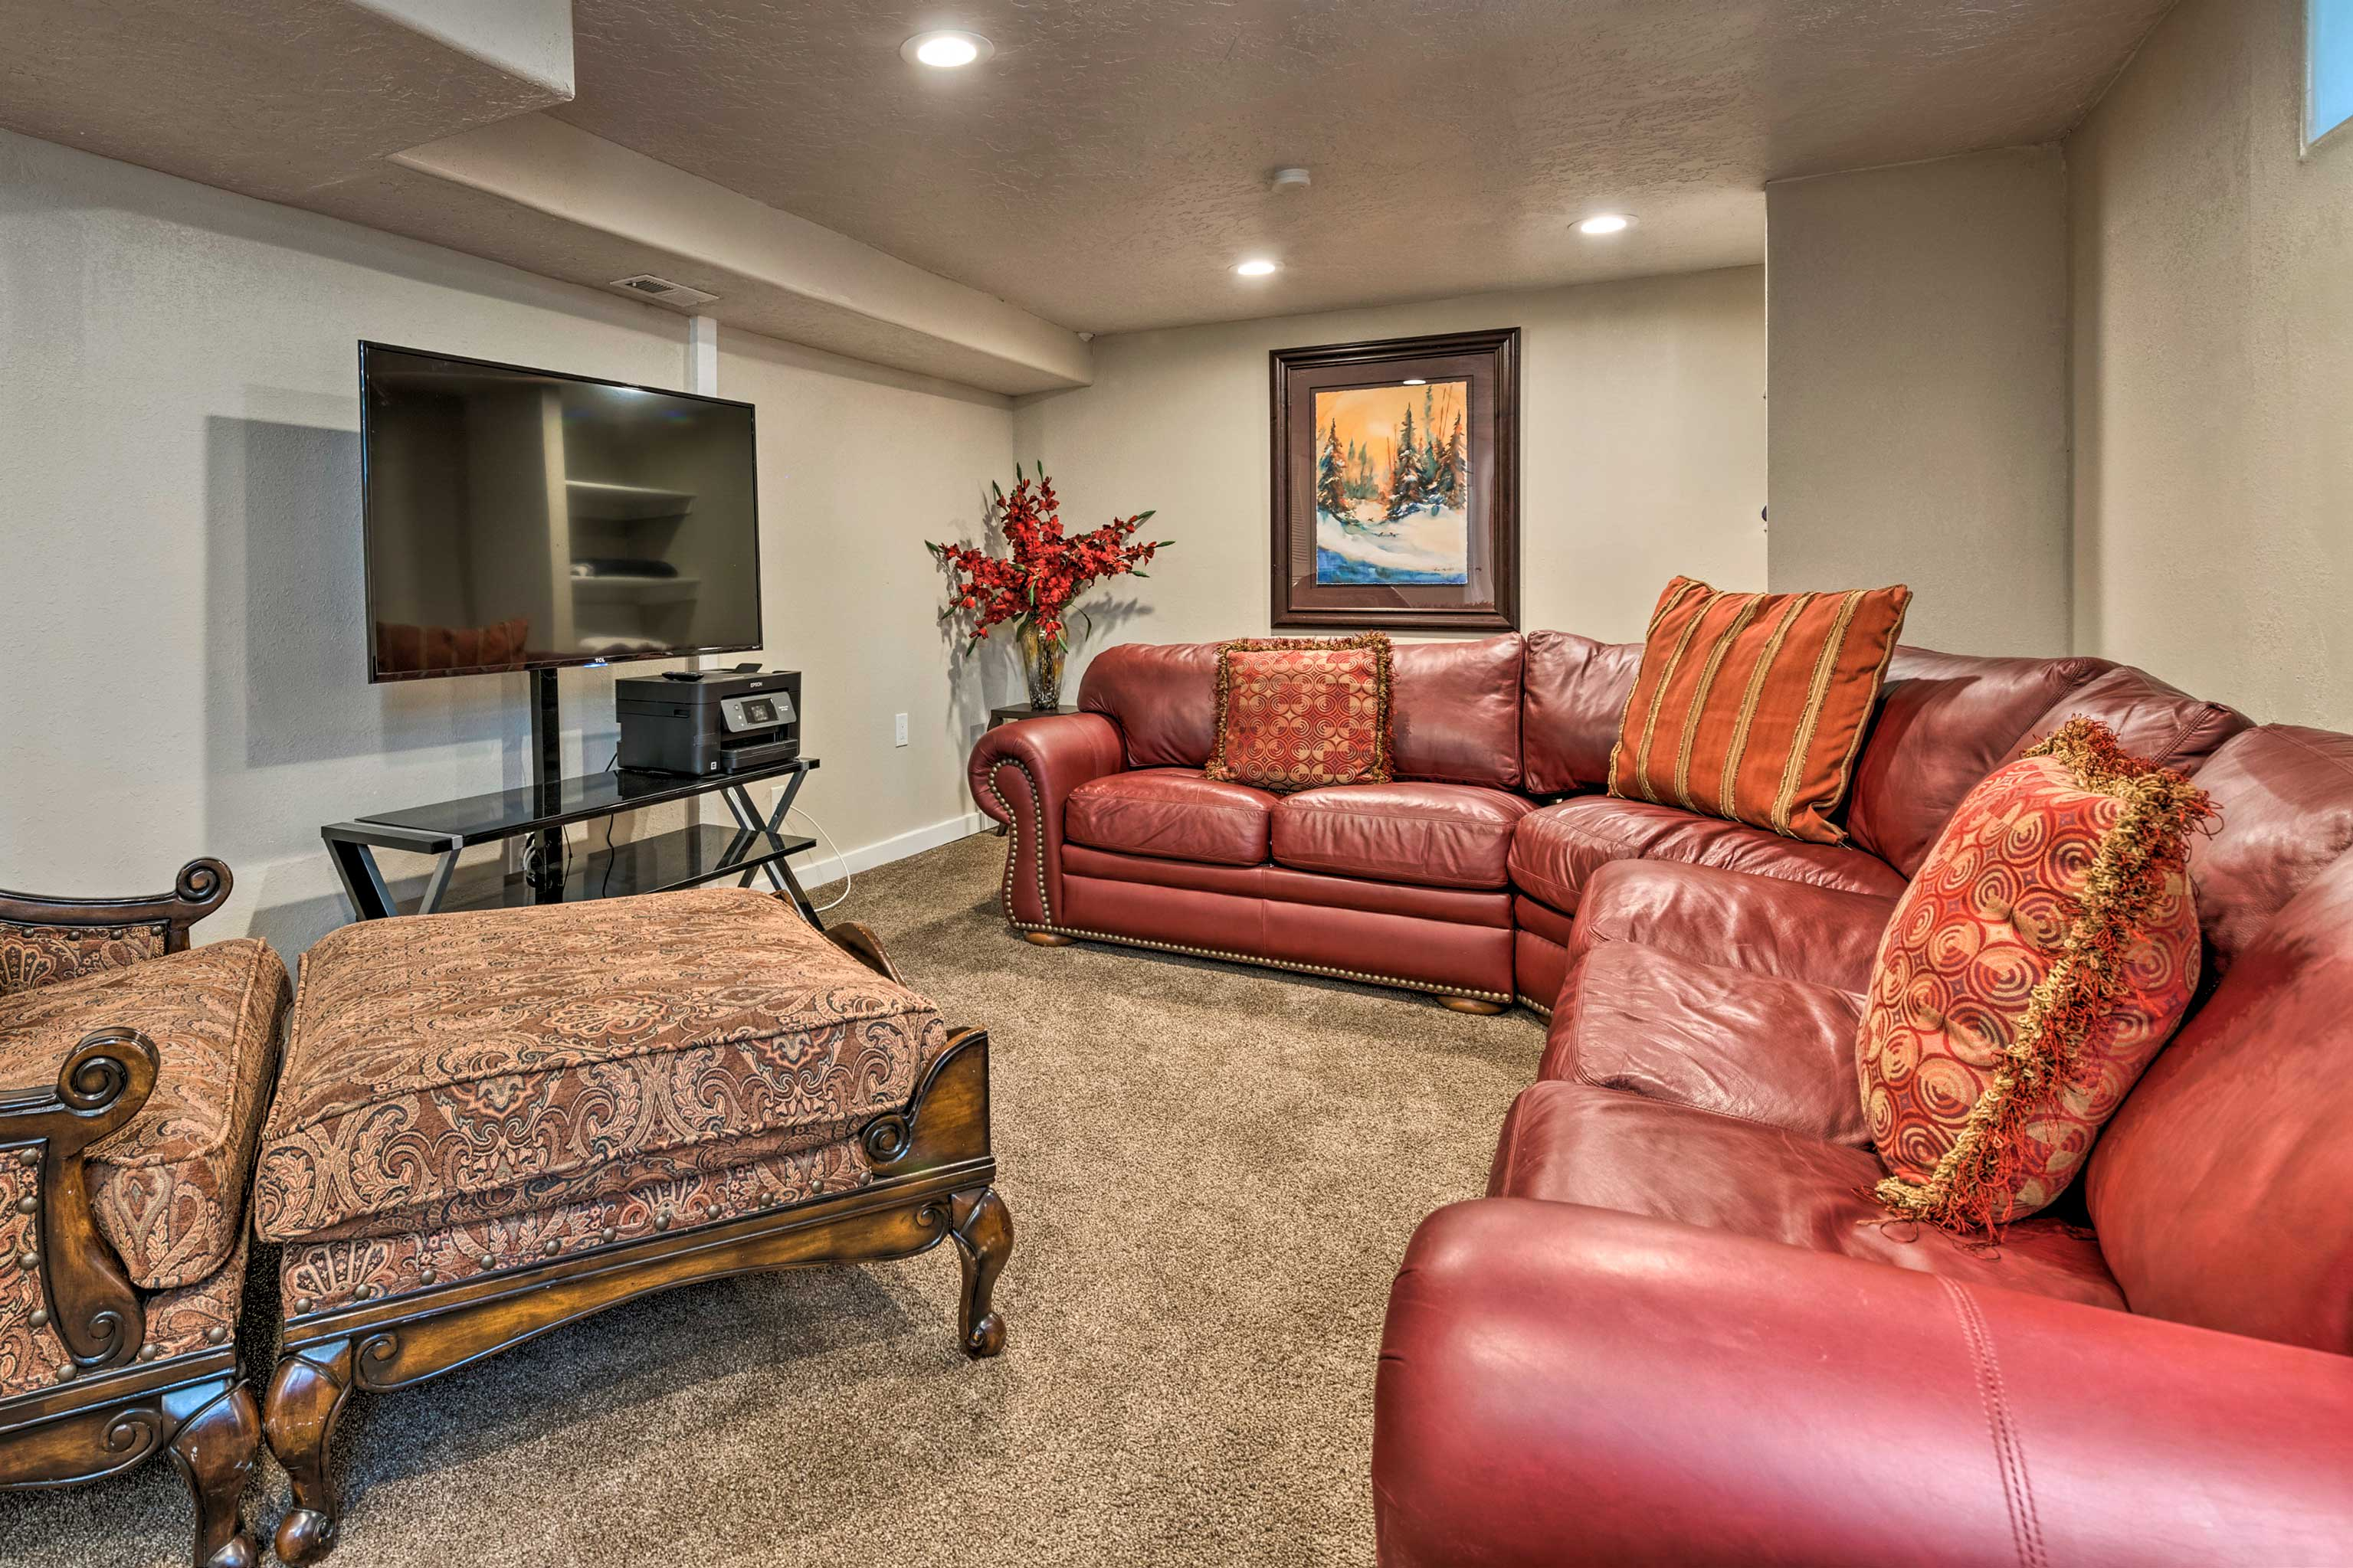 Watch a movie on the flat-screen TV in the basement!